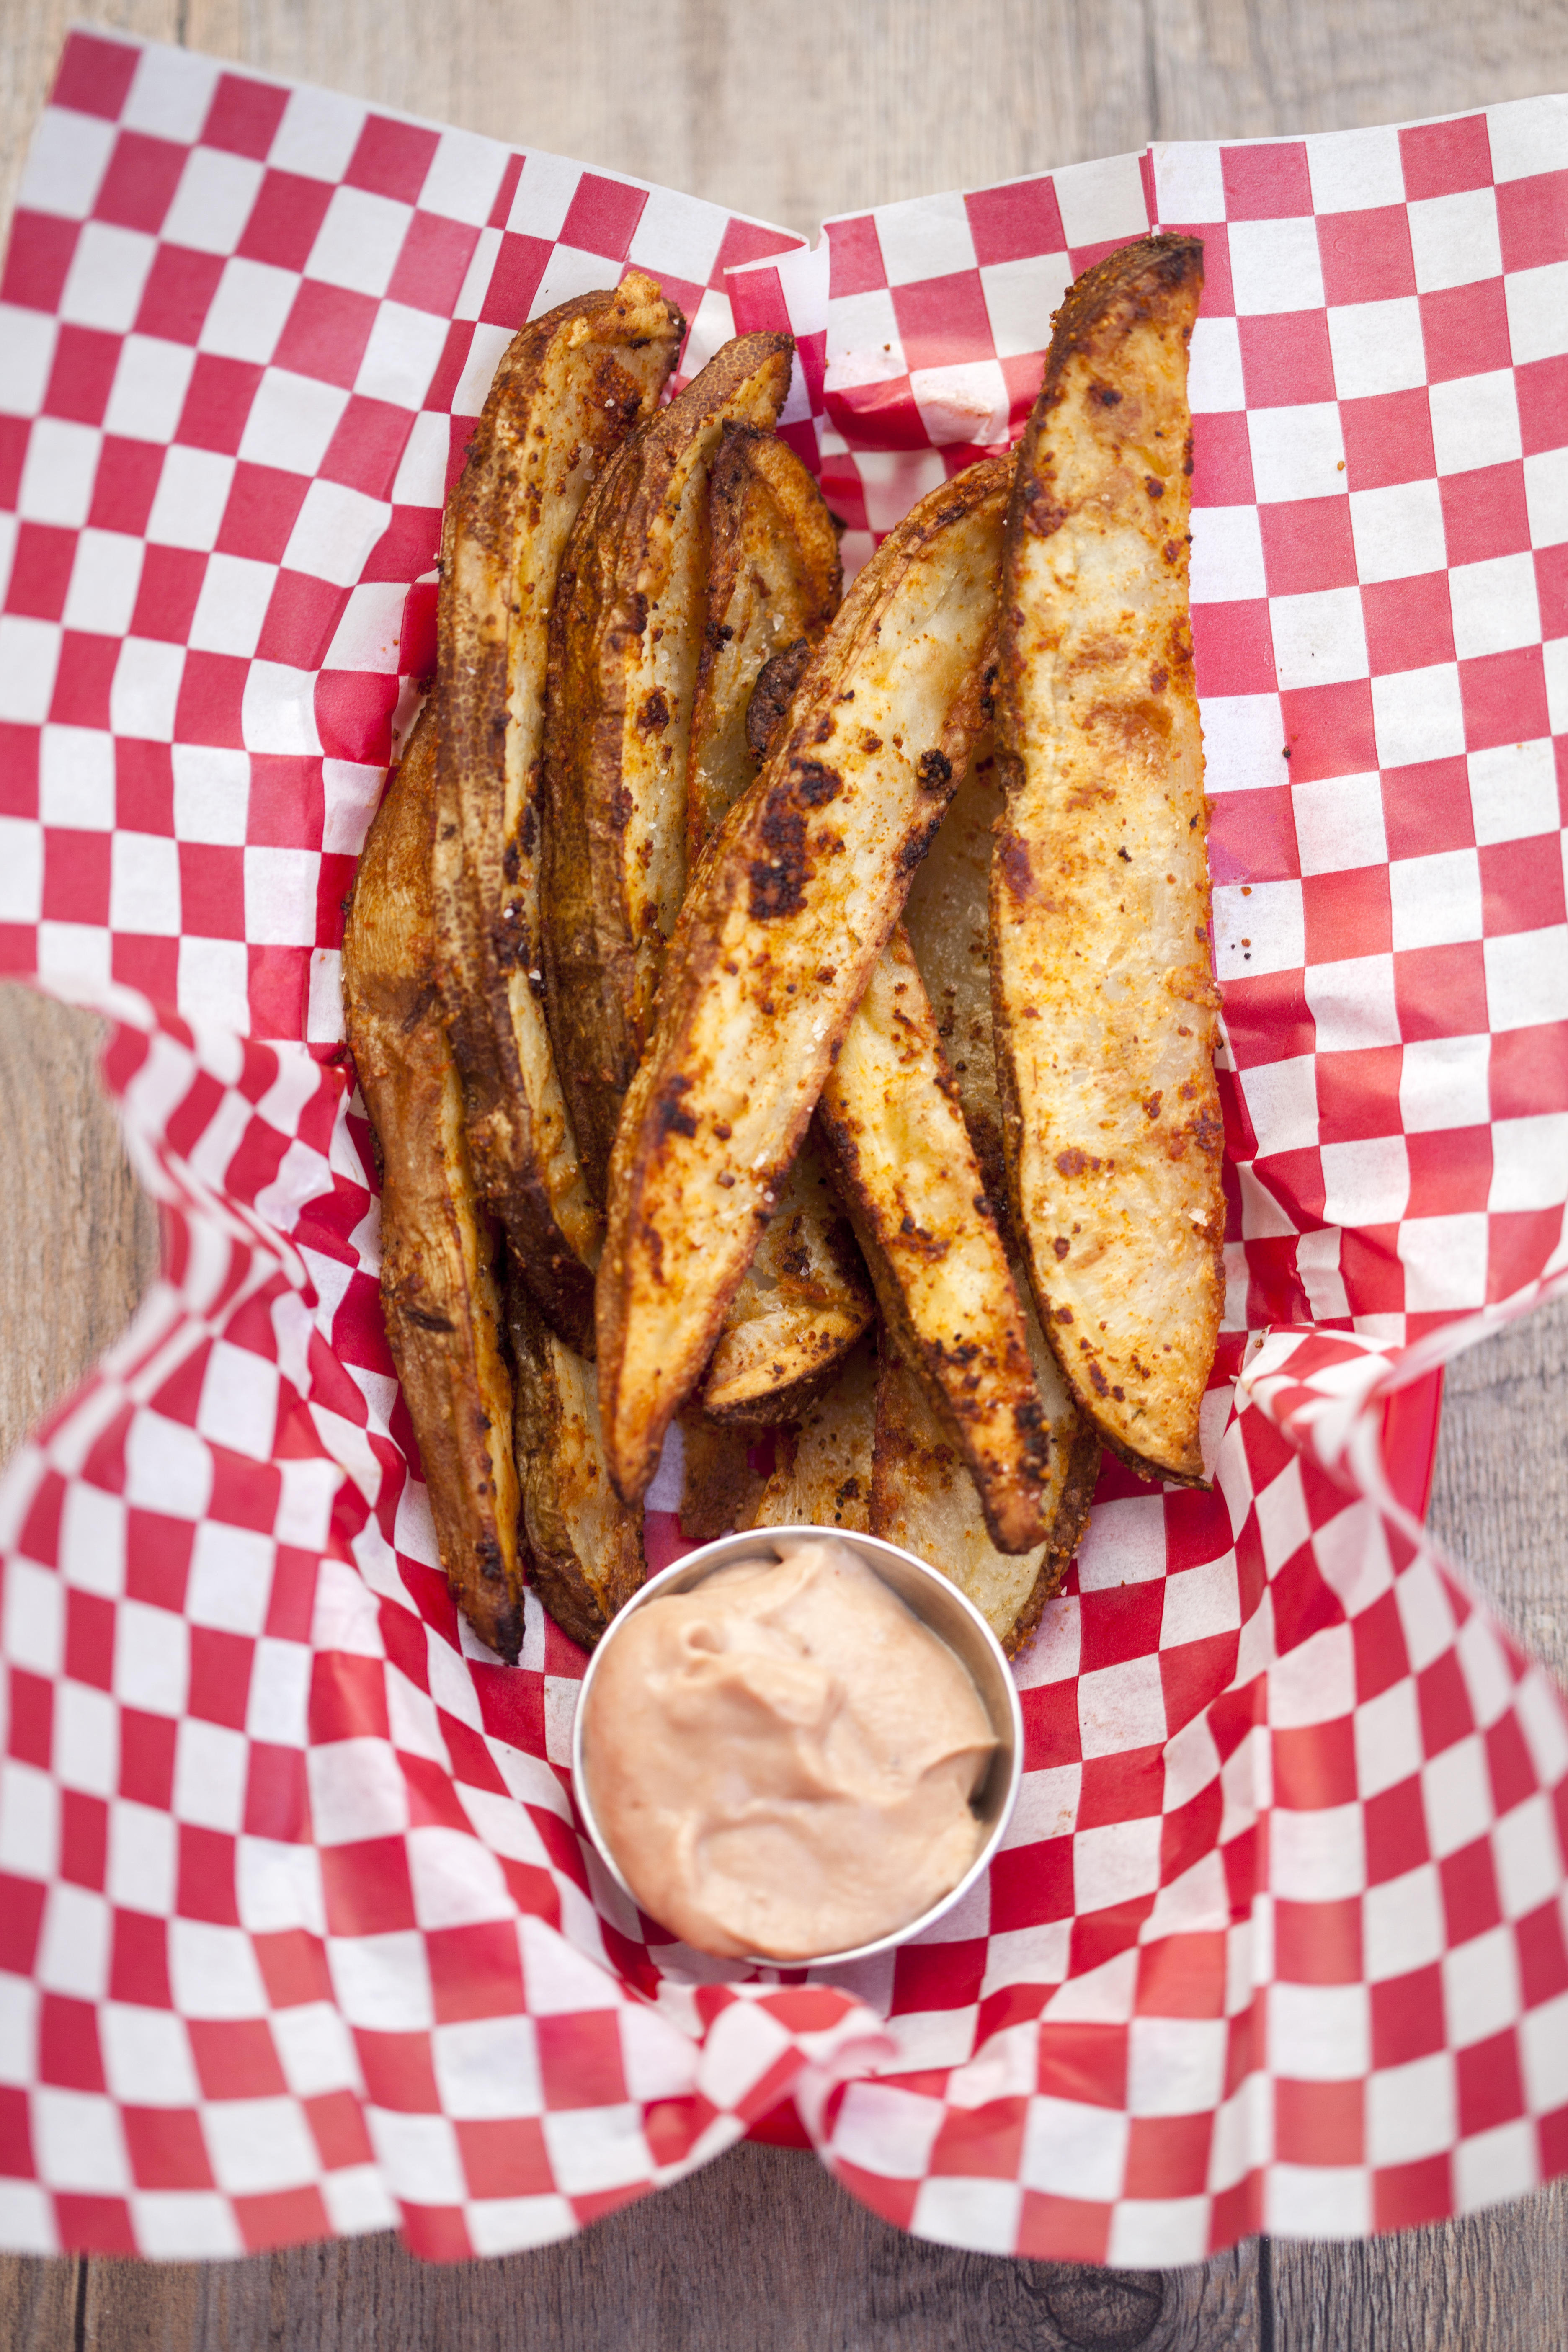 These potato wedges are crazy flavorful on their own, but even better dipped in this barbecue-y sauce! #BeholdPotatoes | spachethespatula.com #recipe